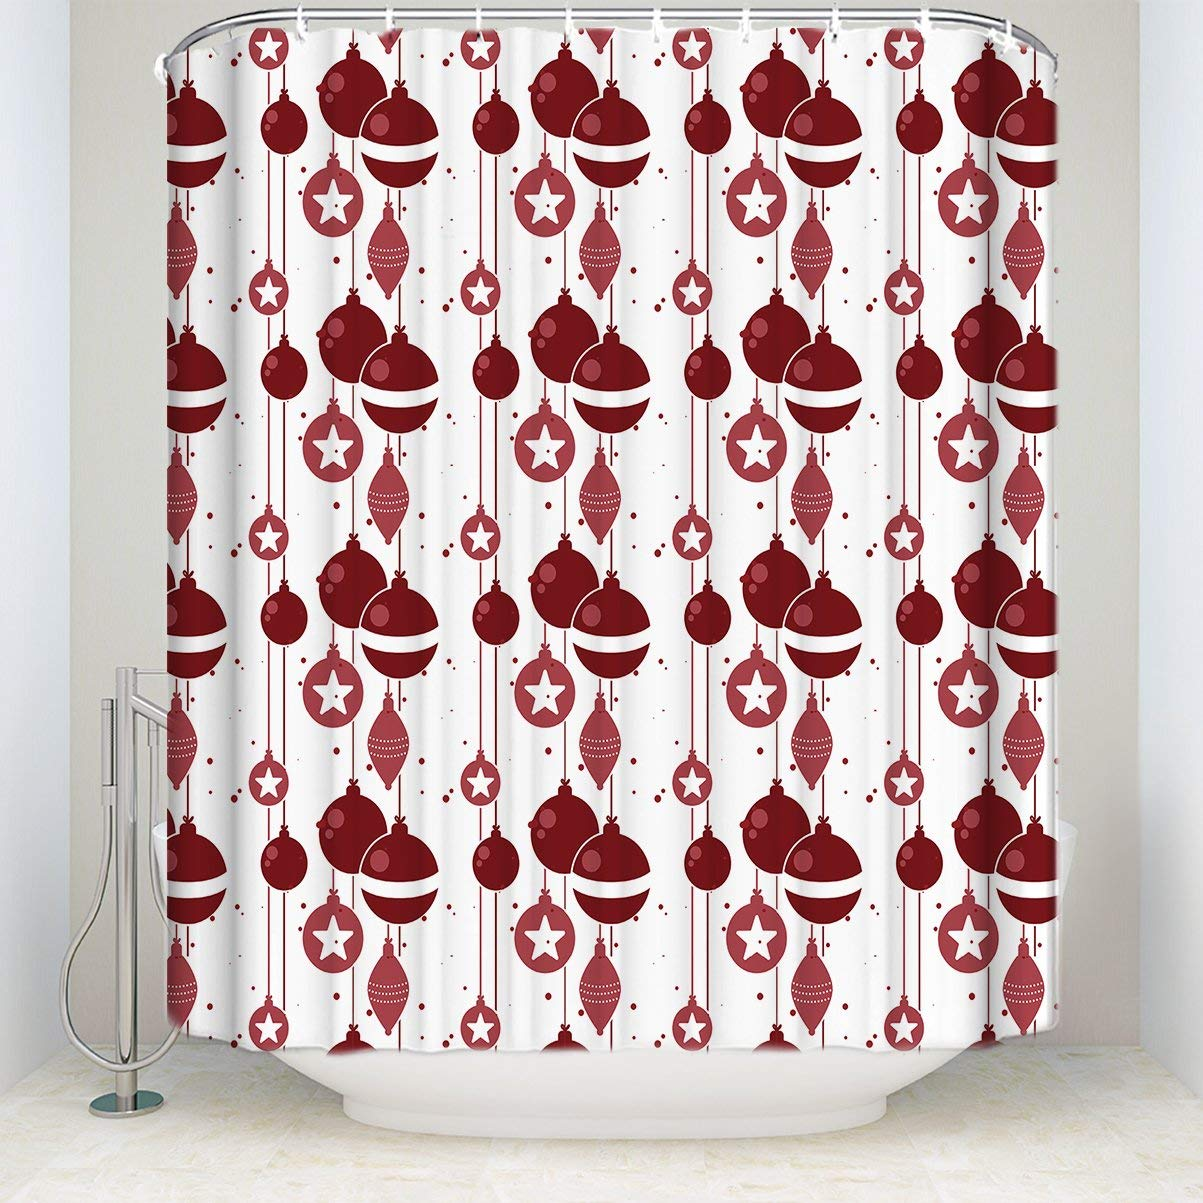 Us 13 99 45 Off Merry Christmas Shower Curtain Christmas Celebration Ornaments Red Digital Print Fabric Bathroom Decor With Hooks In Shower